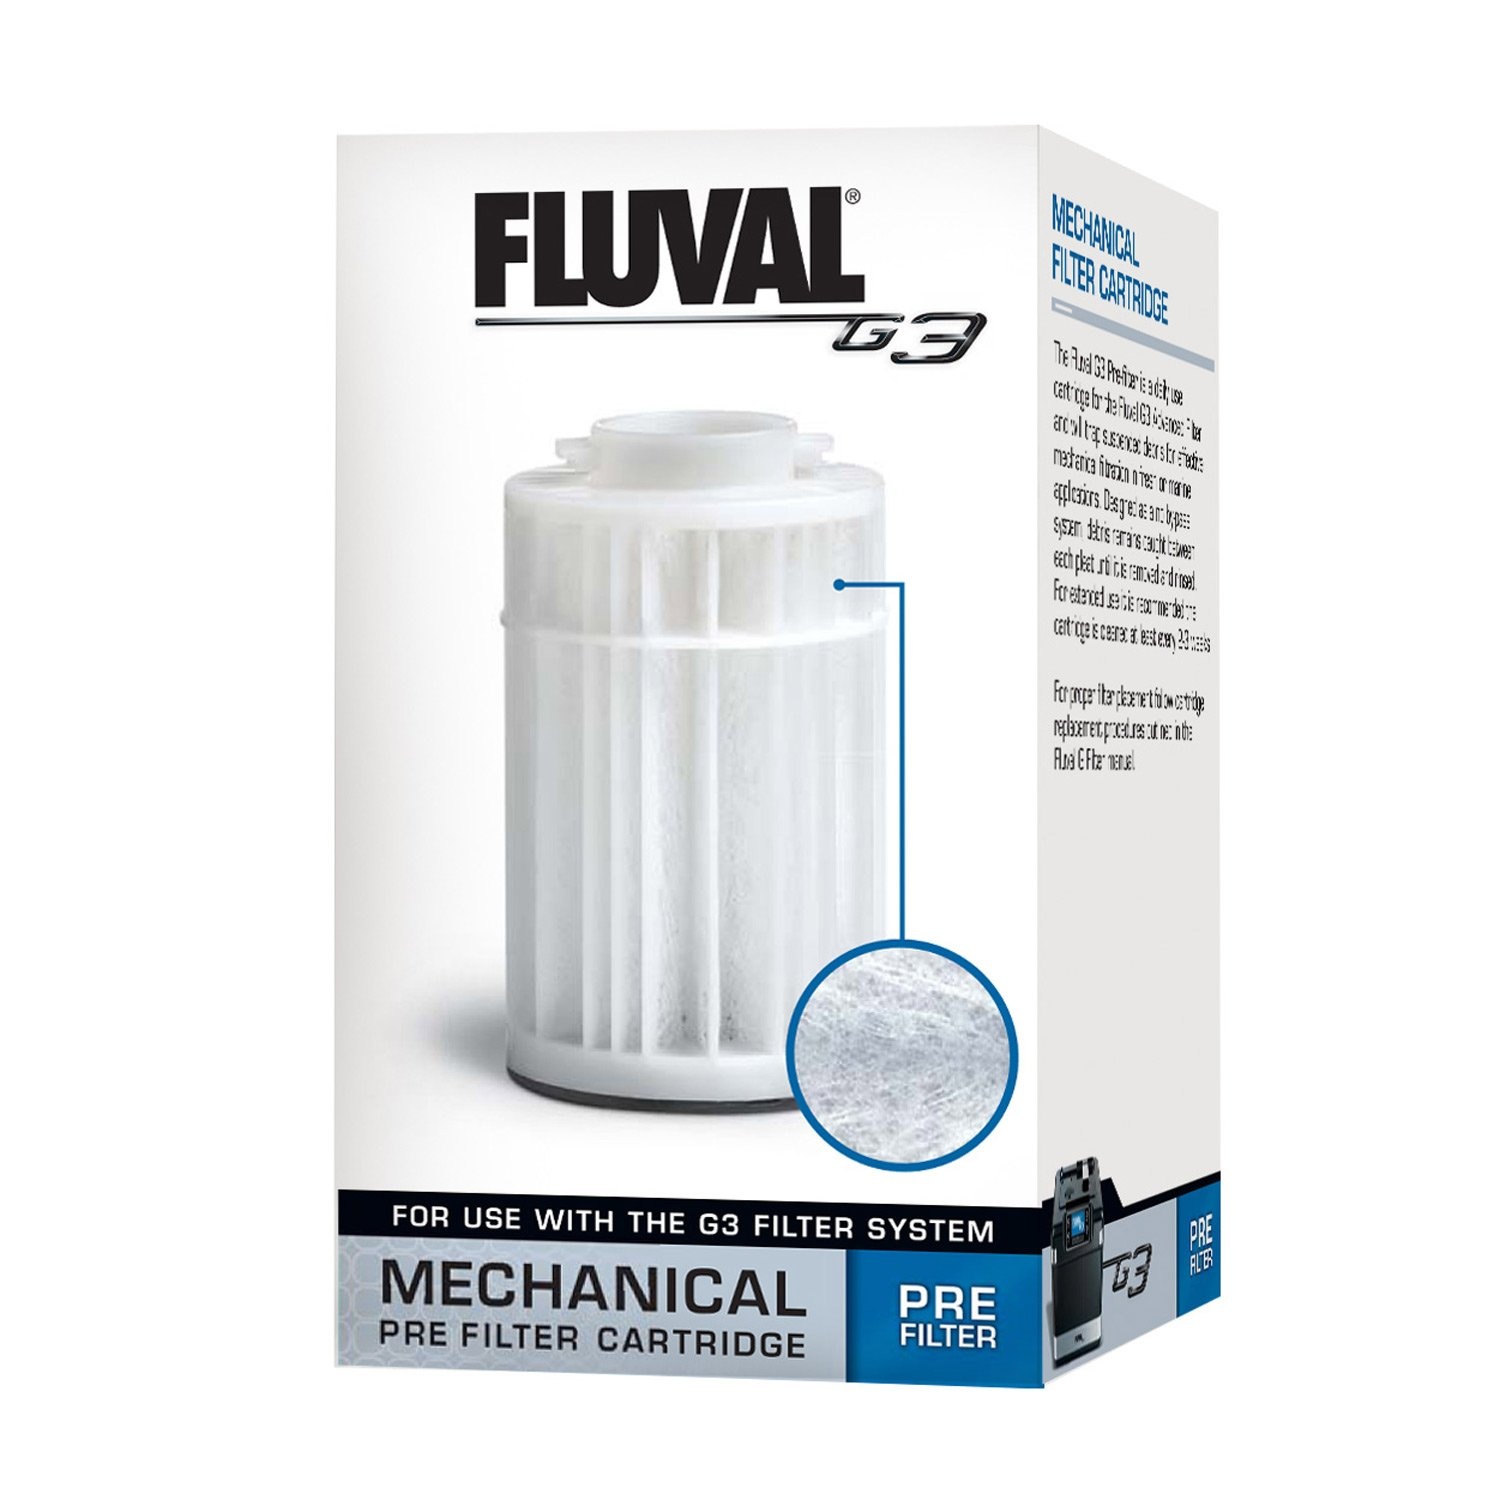 Fluval g3 pre filter cartridge petco for Petco fish tank filters